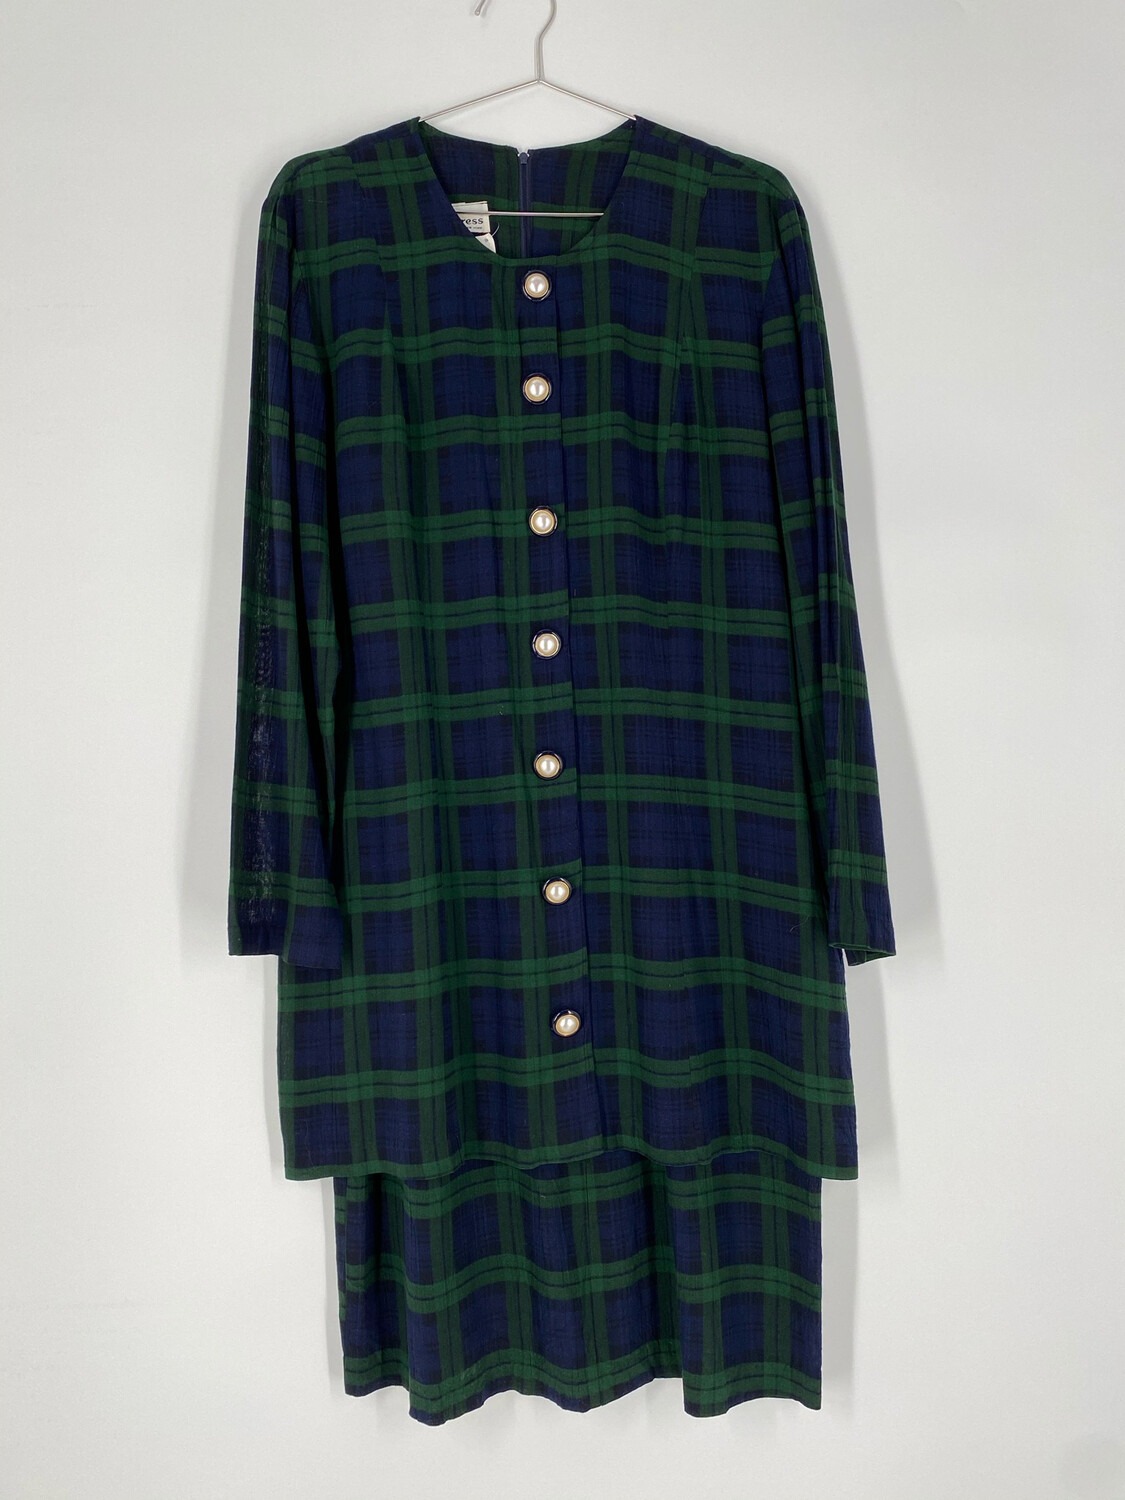 Ultra Dress New York Tartan Button-Up Dress With Attached Skirt Size L